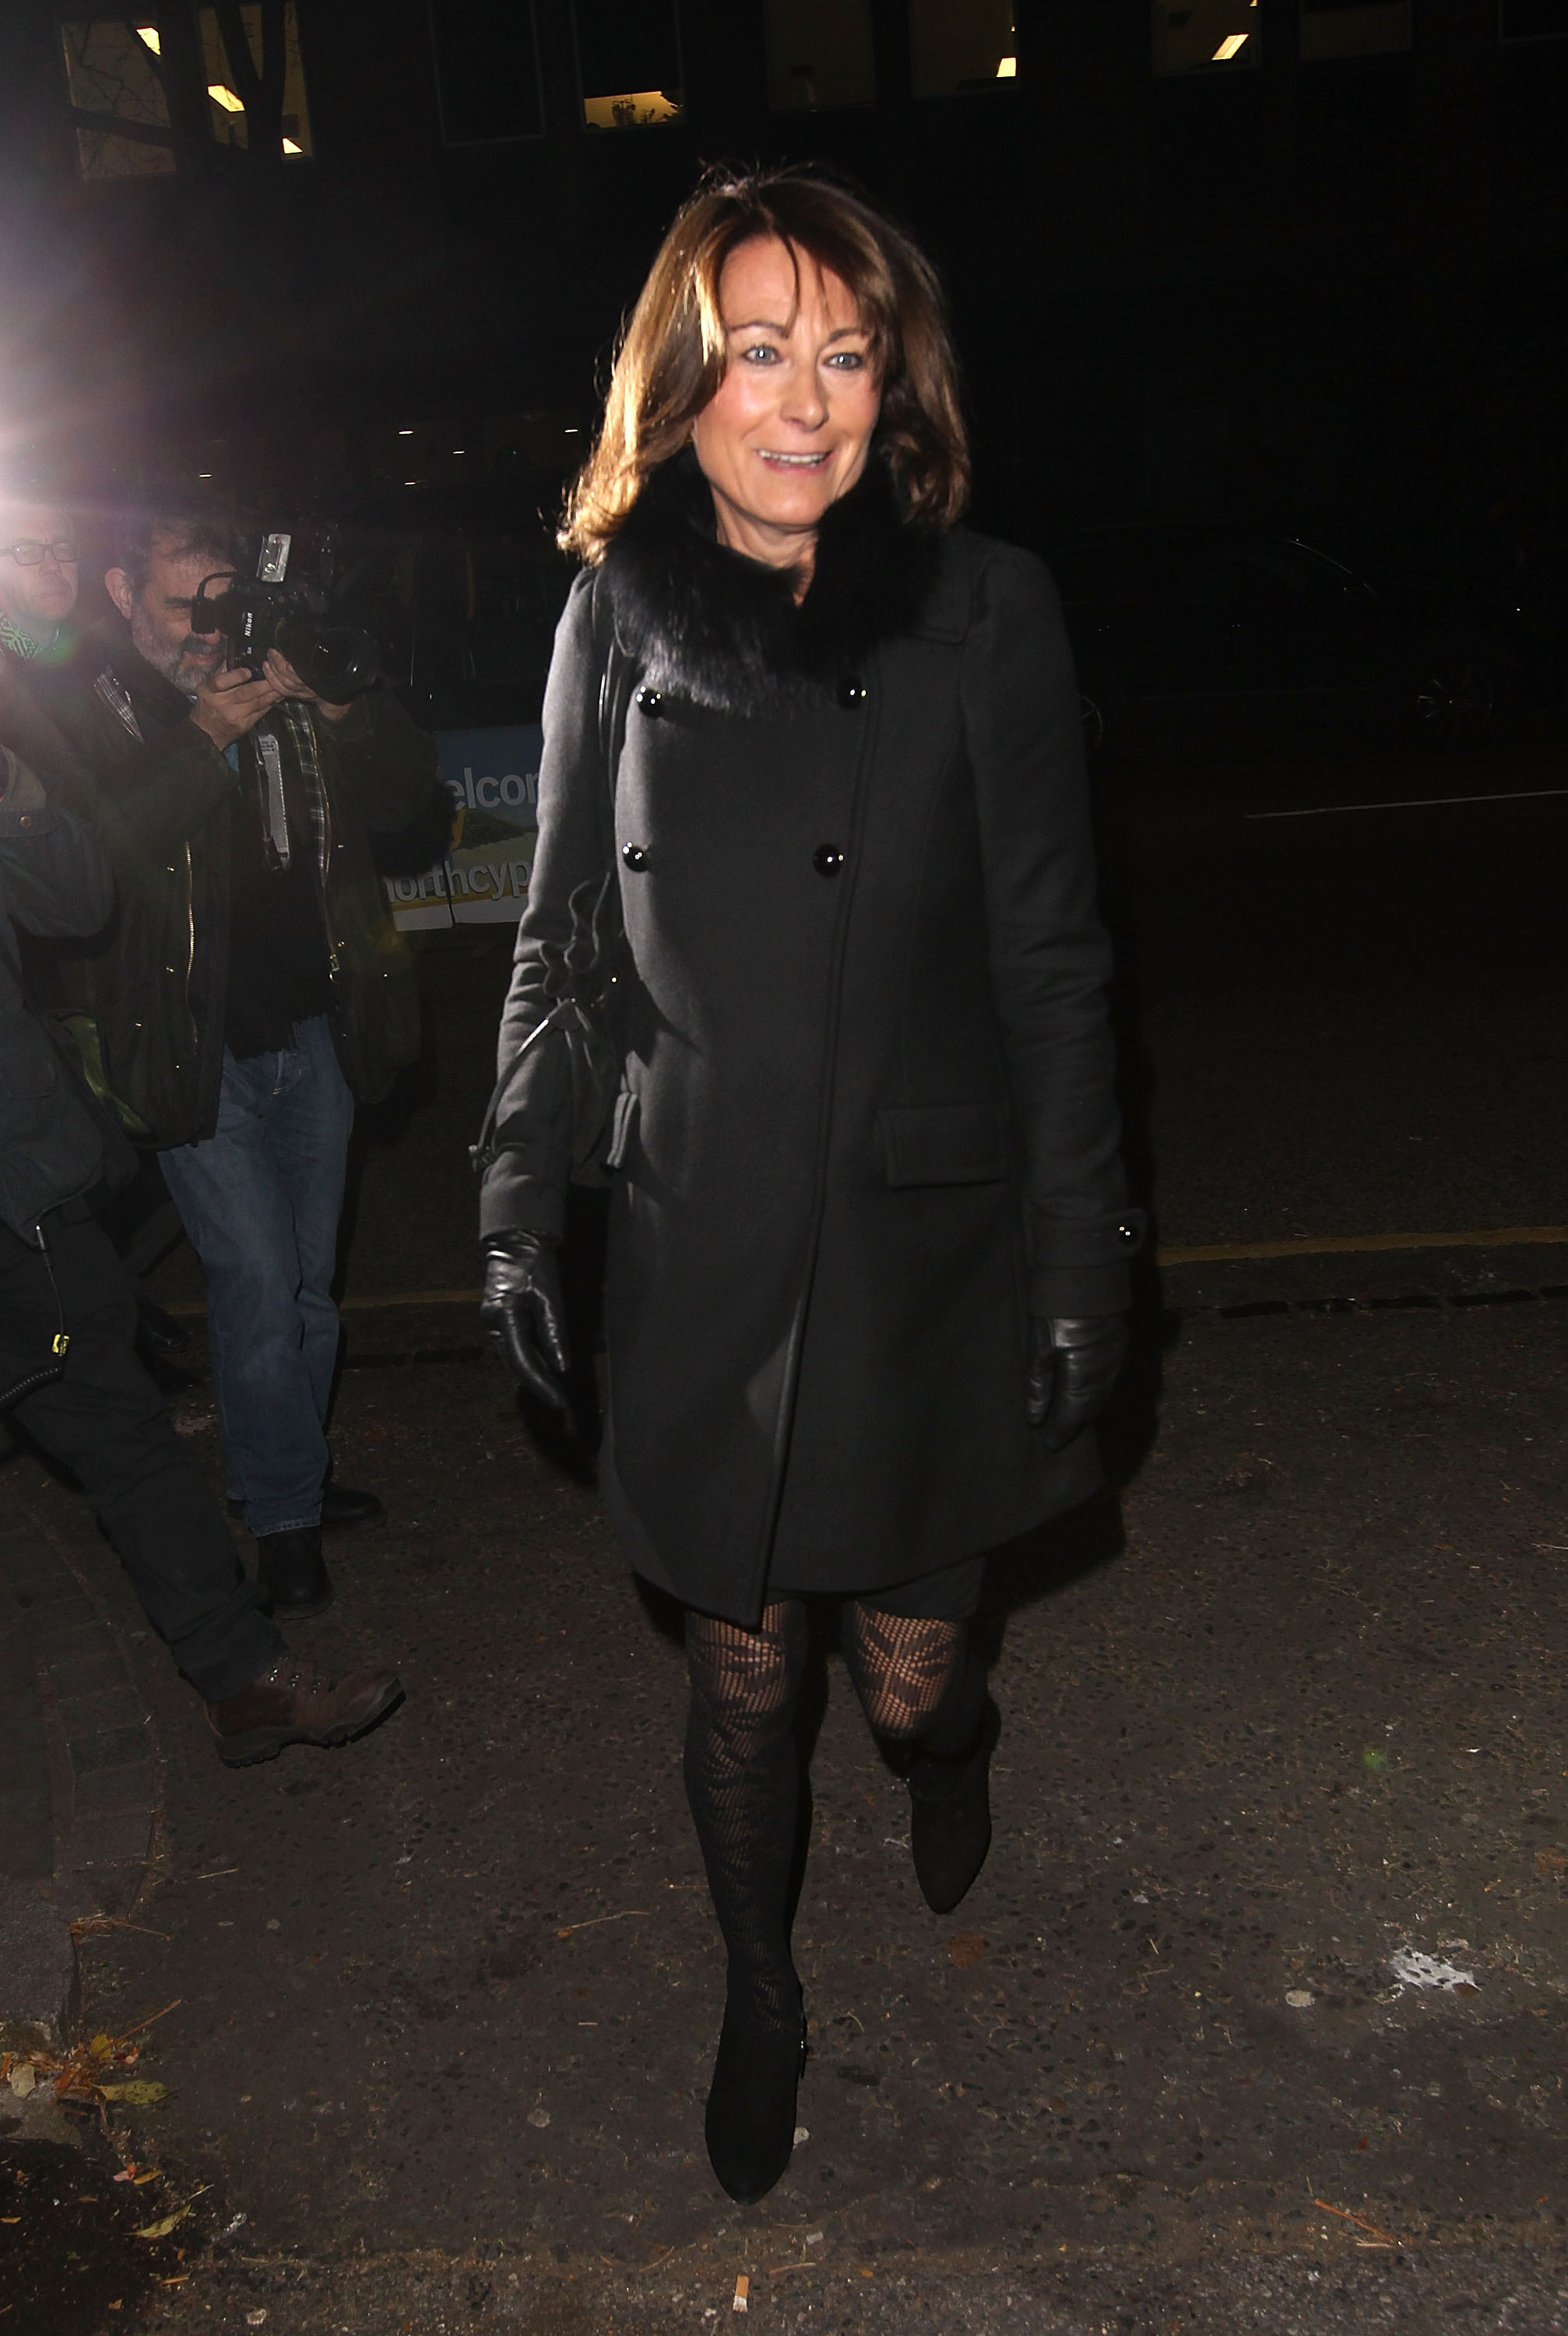 Carole Middleton attends a Christmas carol concert in aid of the Henry van Strauzenbee memorial fund at St Luke's Church on December 4, 2013 in London, England. (Getty Images)